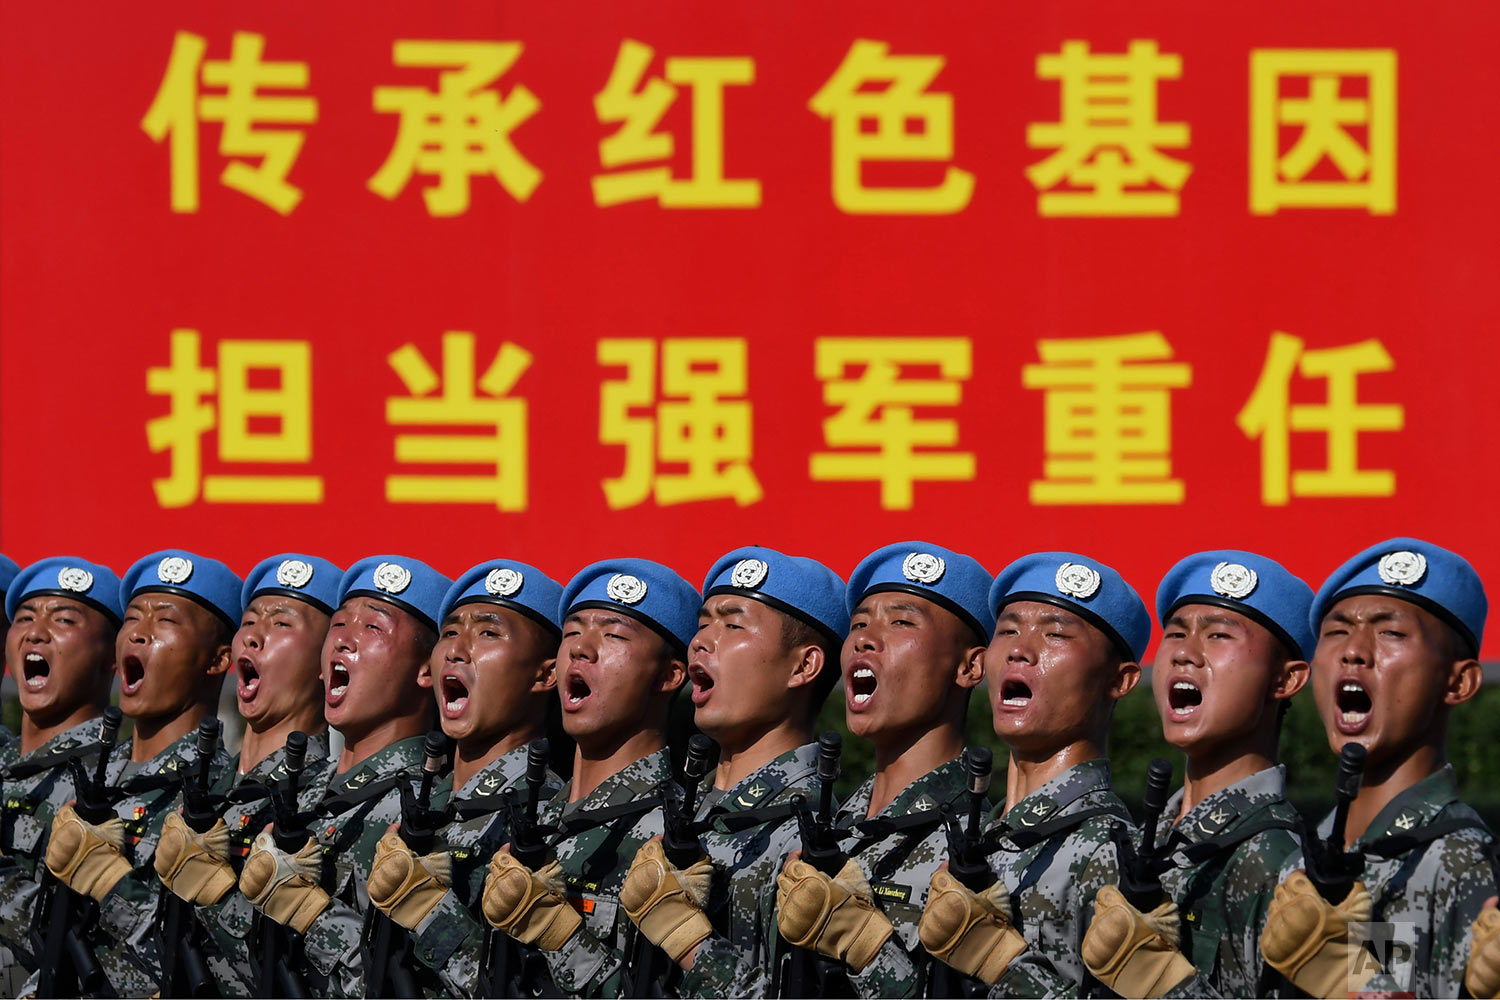 Soldiers practice marching in formation ahead of the military parade to celebrate the 70th anniversary of the founding of the People's Republic of China in Beijing, Wednesday, Sept. 25, 2019. (Naohiko Hatta/Pool Photo via AP)